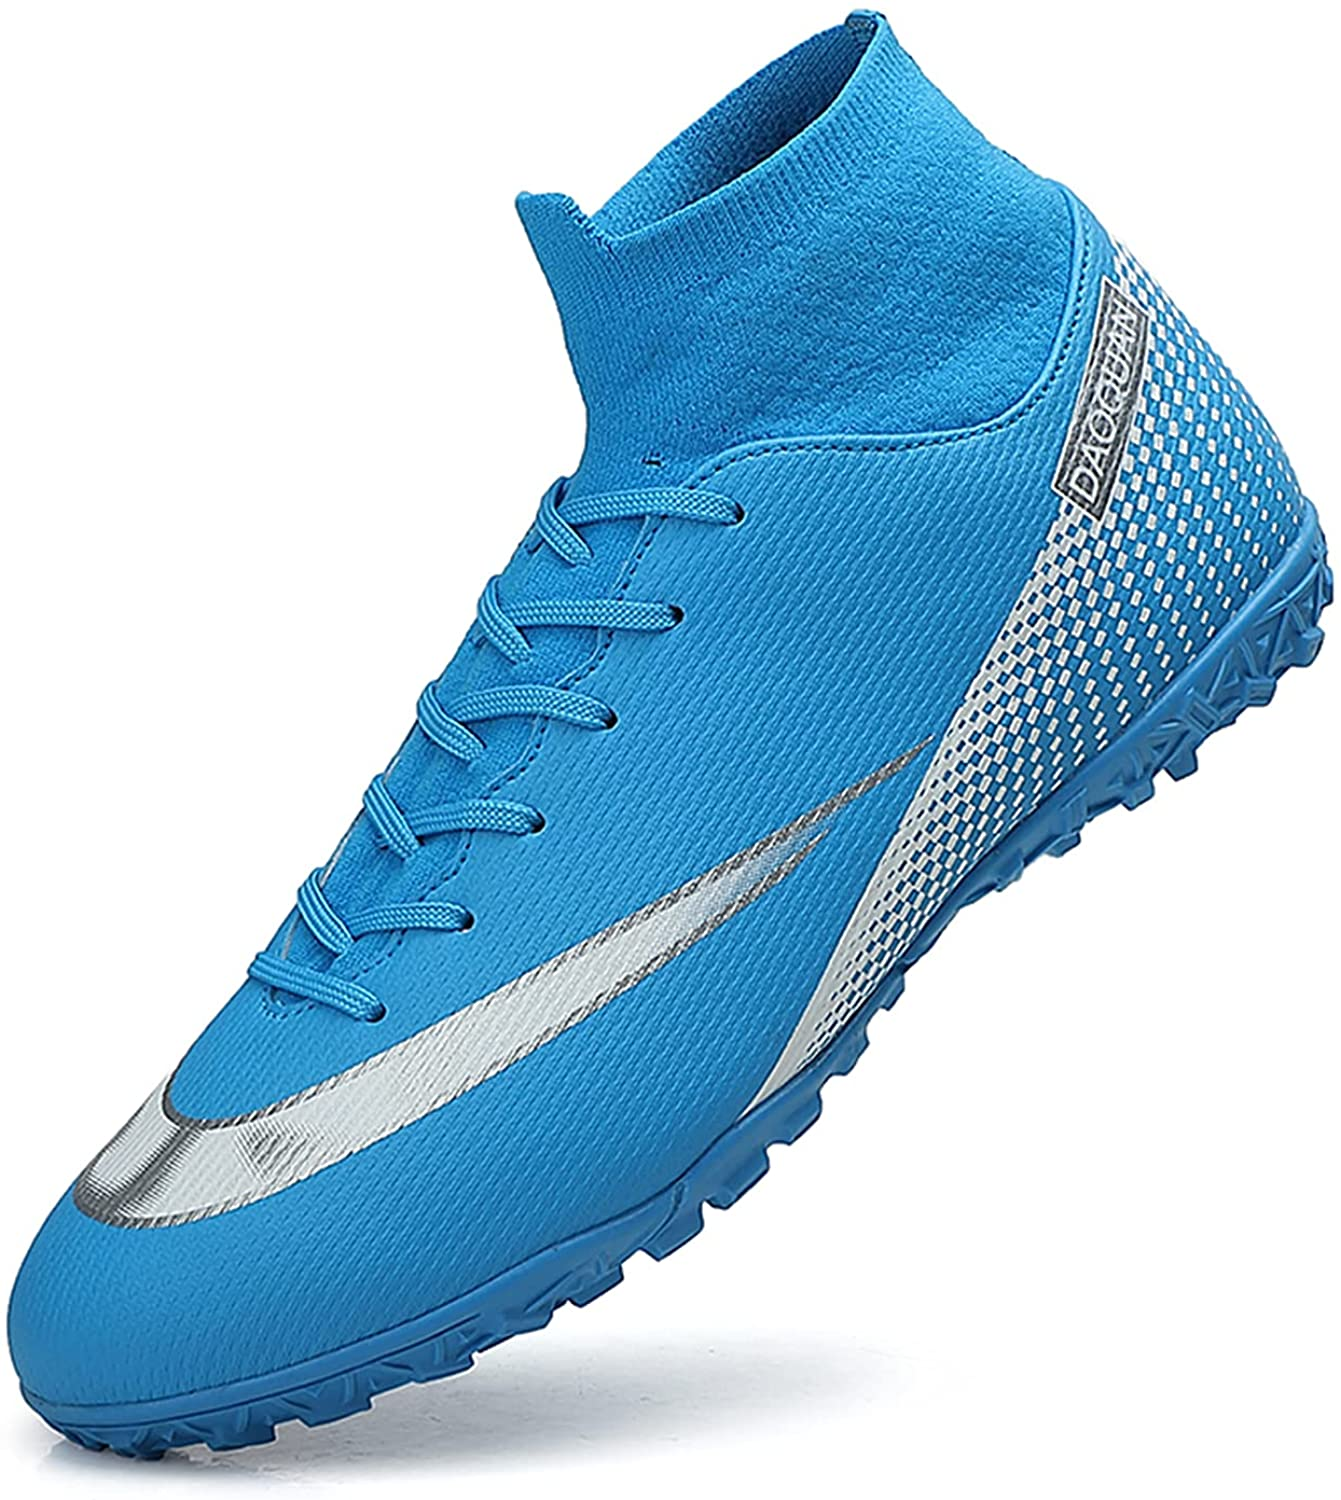 HaloTeam Max 40% OFF Men's Soccer Shoes Professional Long-awaited High-Top Cleats Breatha